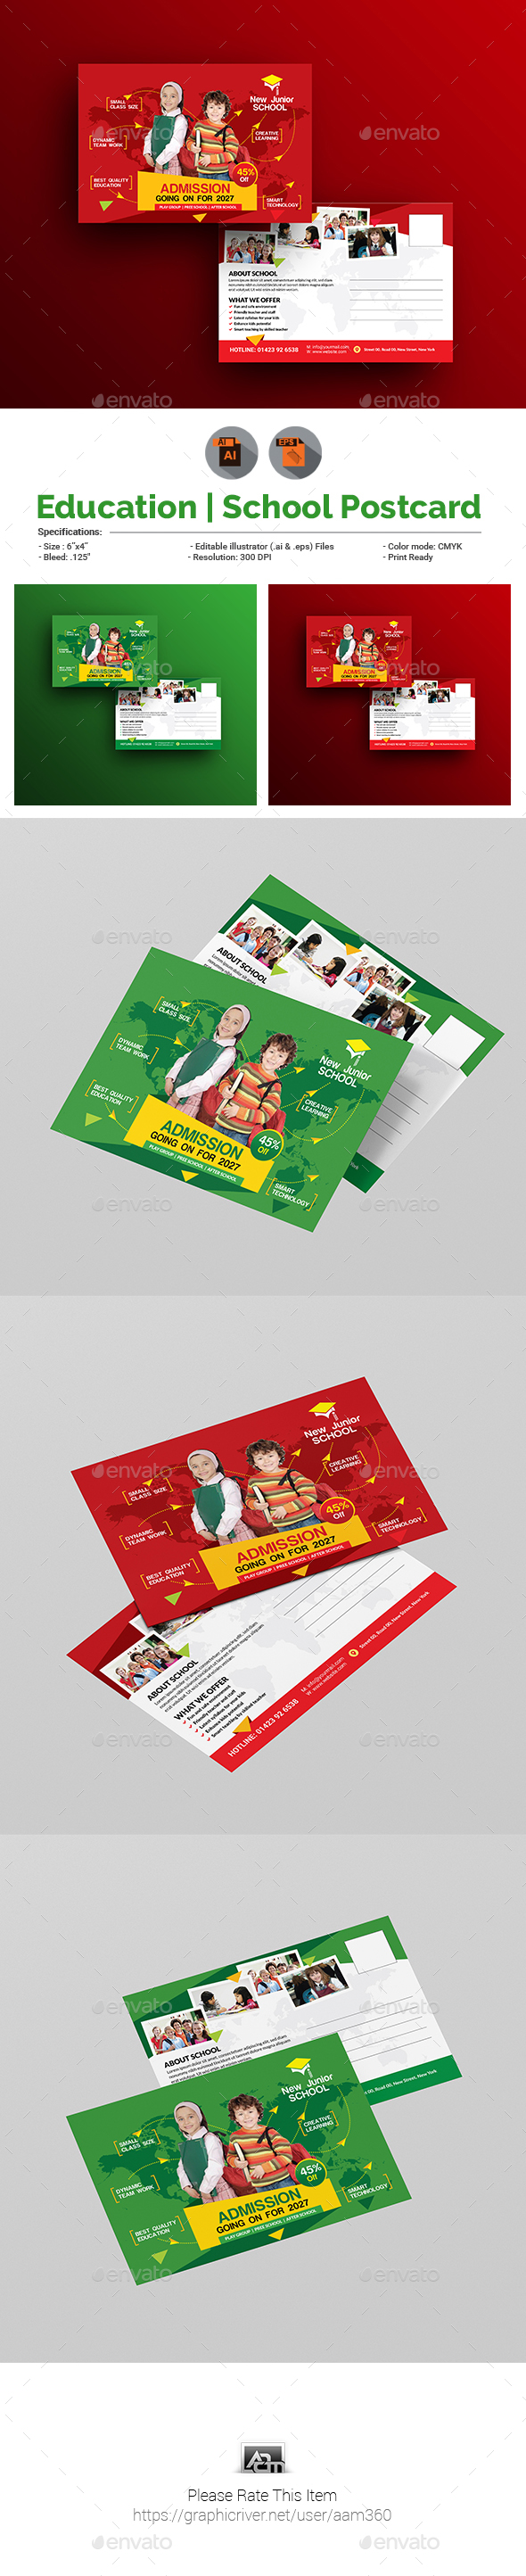 Junior School Promotional Postcard Template - Cards & Invites Print Templates